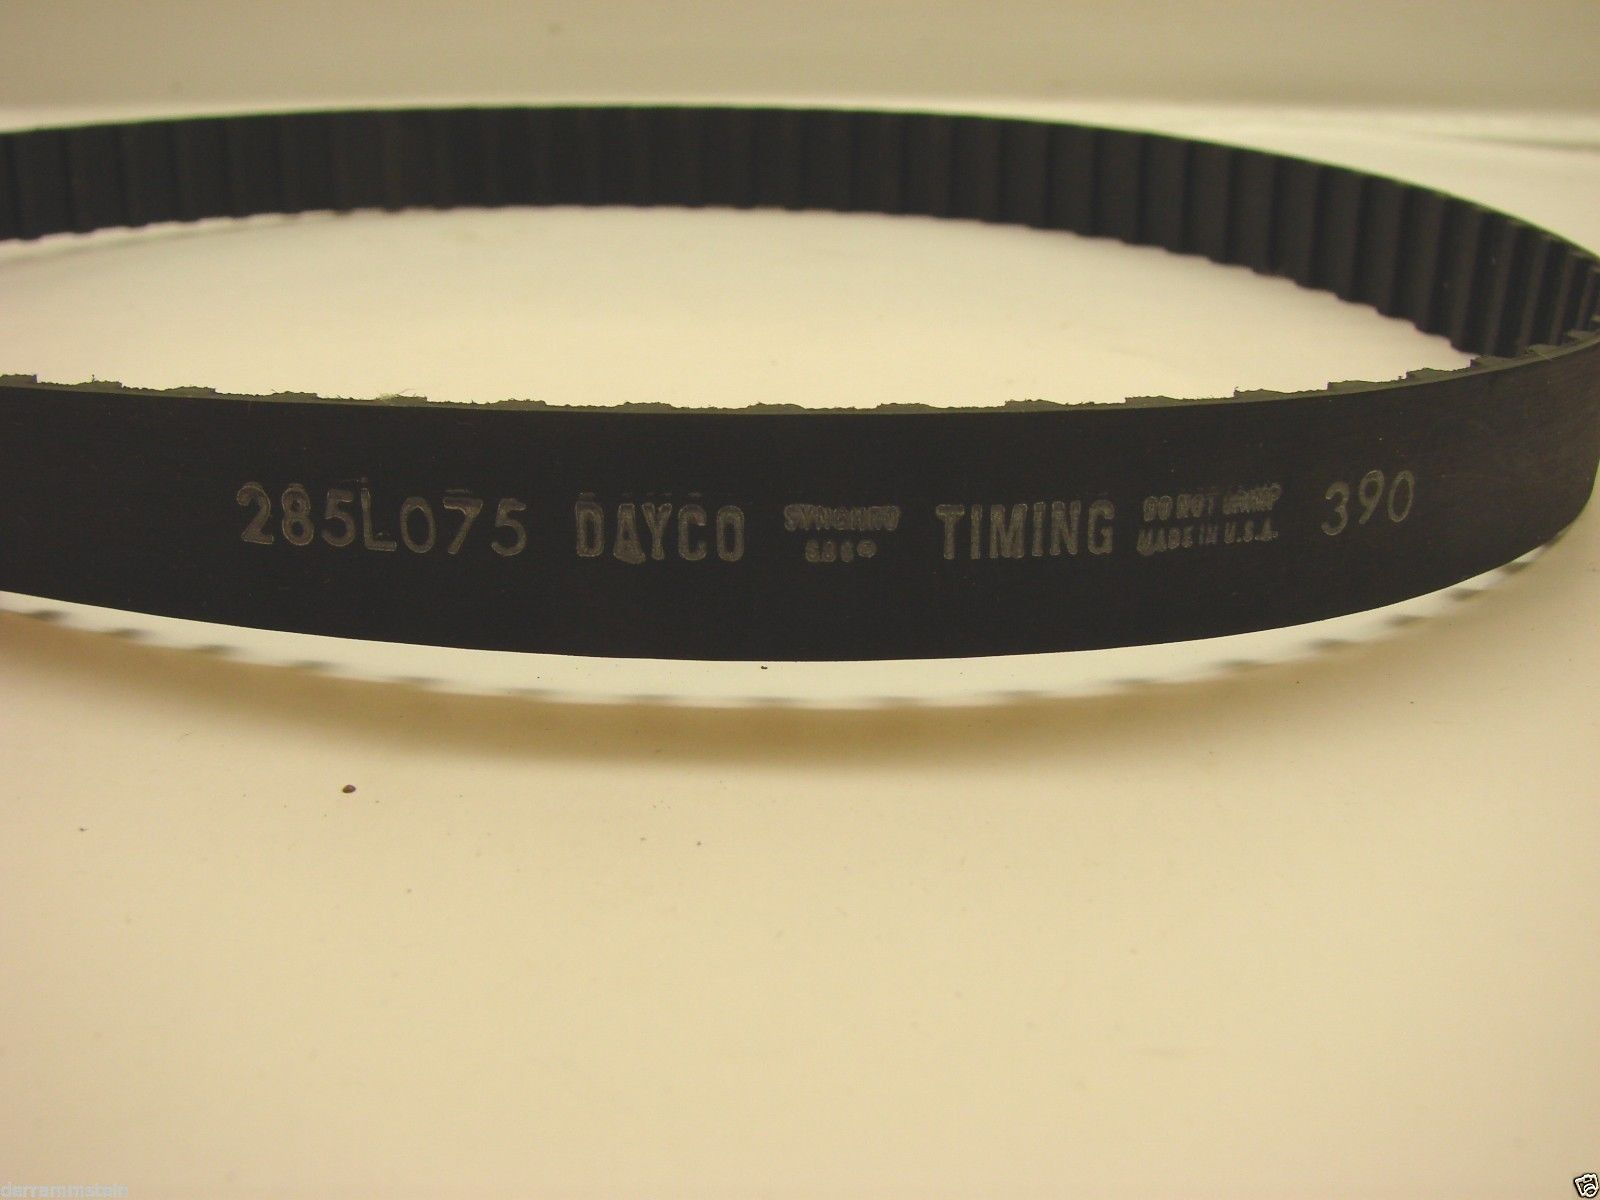 "Dayco 285L075 Timing Belt 3/4"" Width 3/8"" Pitch 76 Teeth b75"